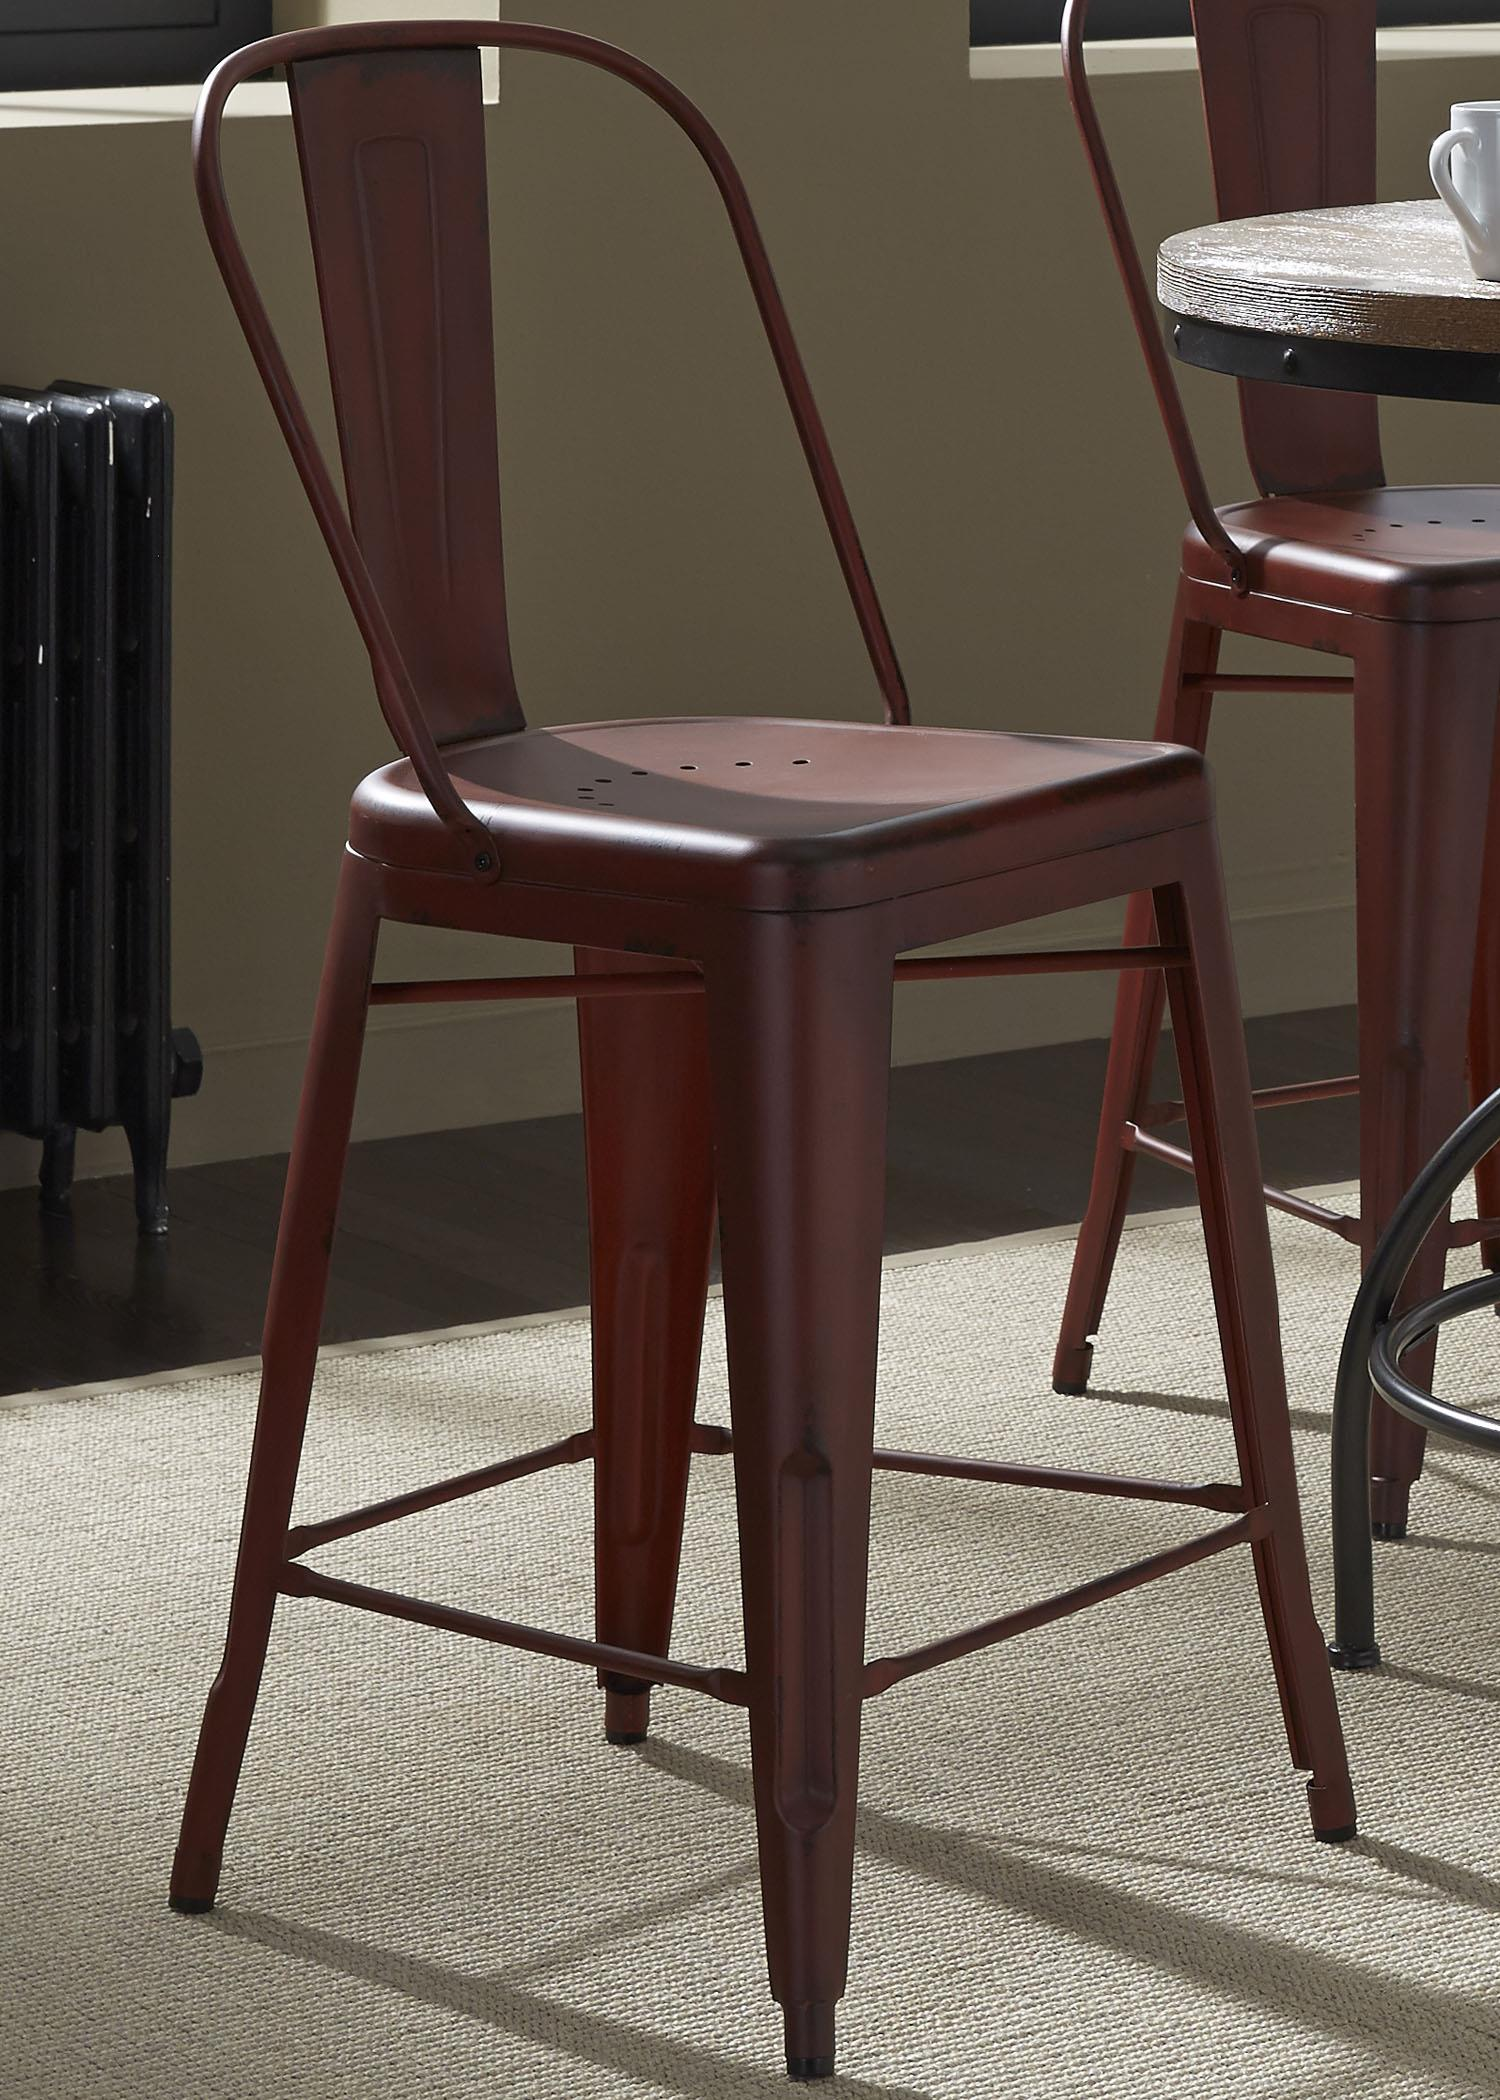 Vintage Dining Series Bow Back Counter Chair by Liberty Furniture at Bullard Furniture